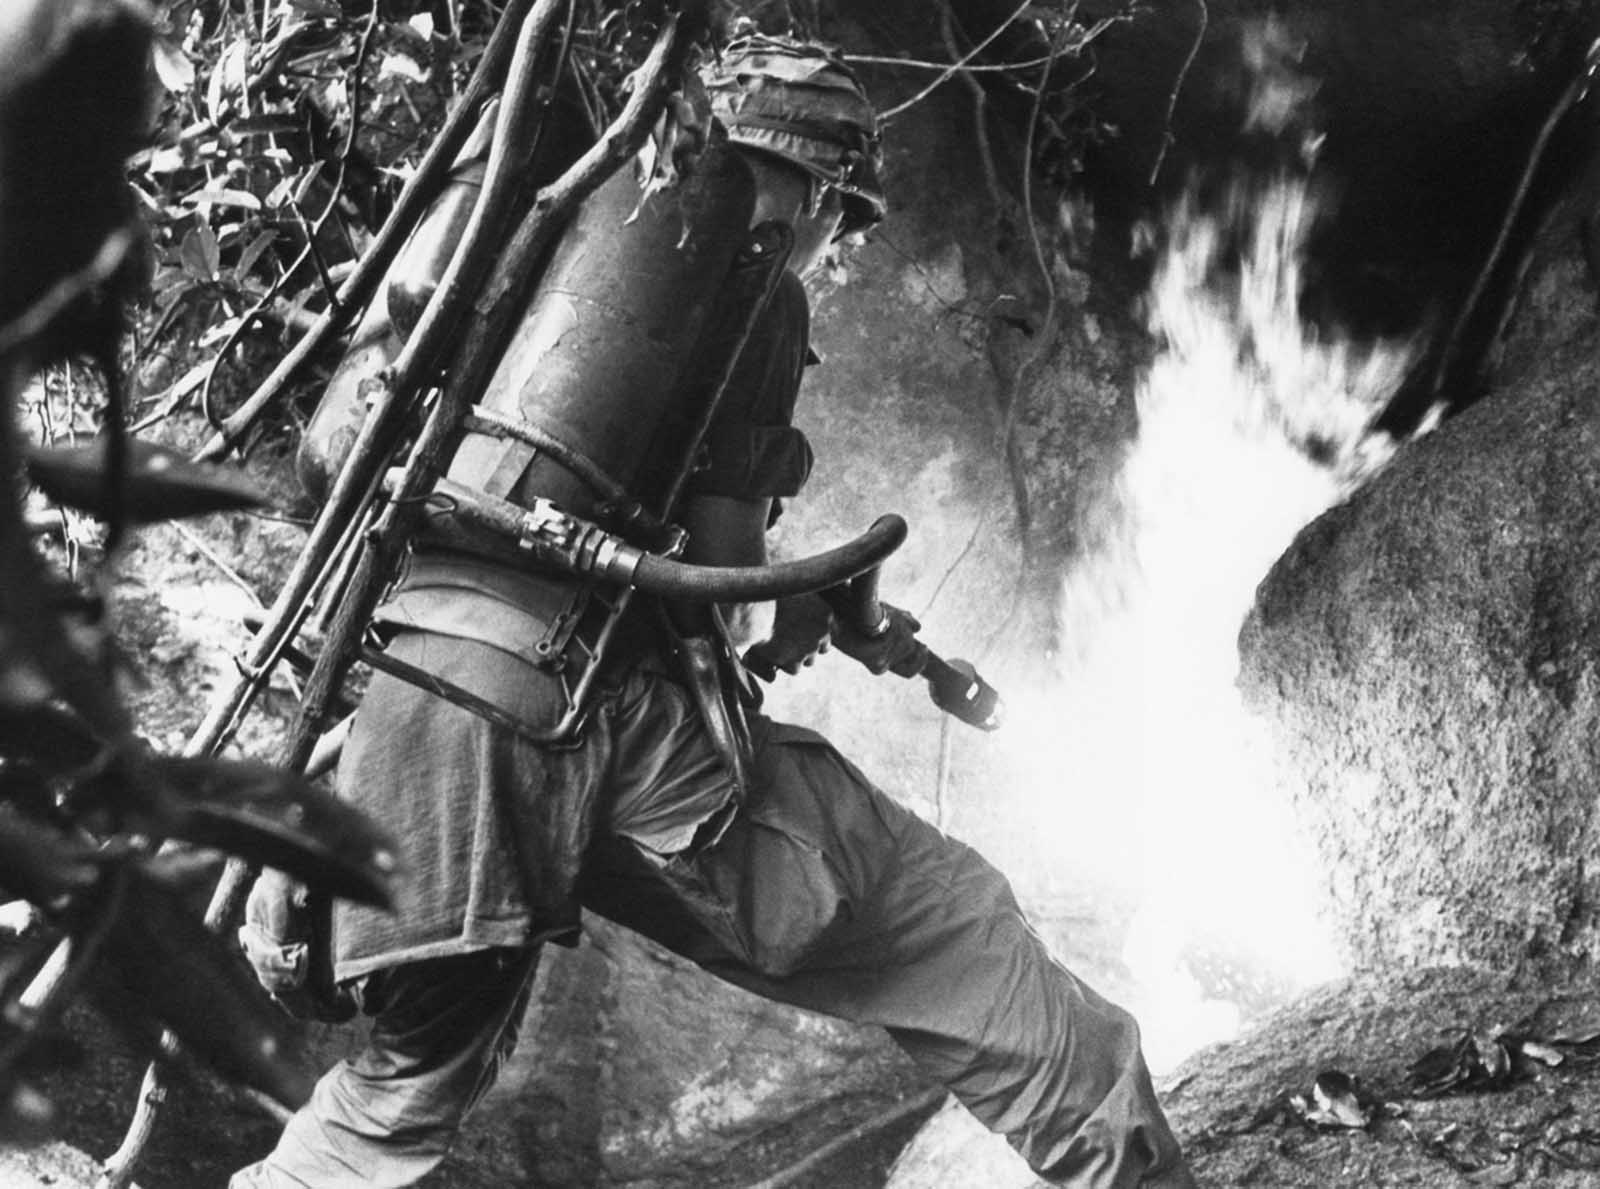 A trooper of the U.S. 1st cavalry division aims a flamethrower at the mouth of cave in An Lao Valley in South Vietnam, on April 14, 1967, after the Viet Cong group hiding in it were warned to emerge.